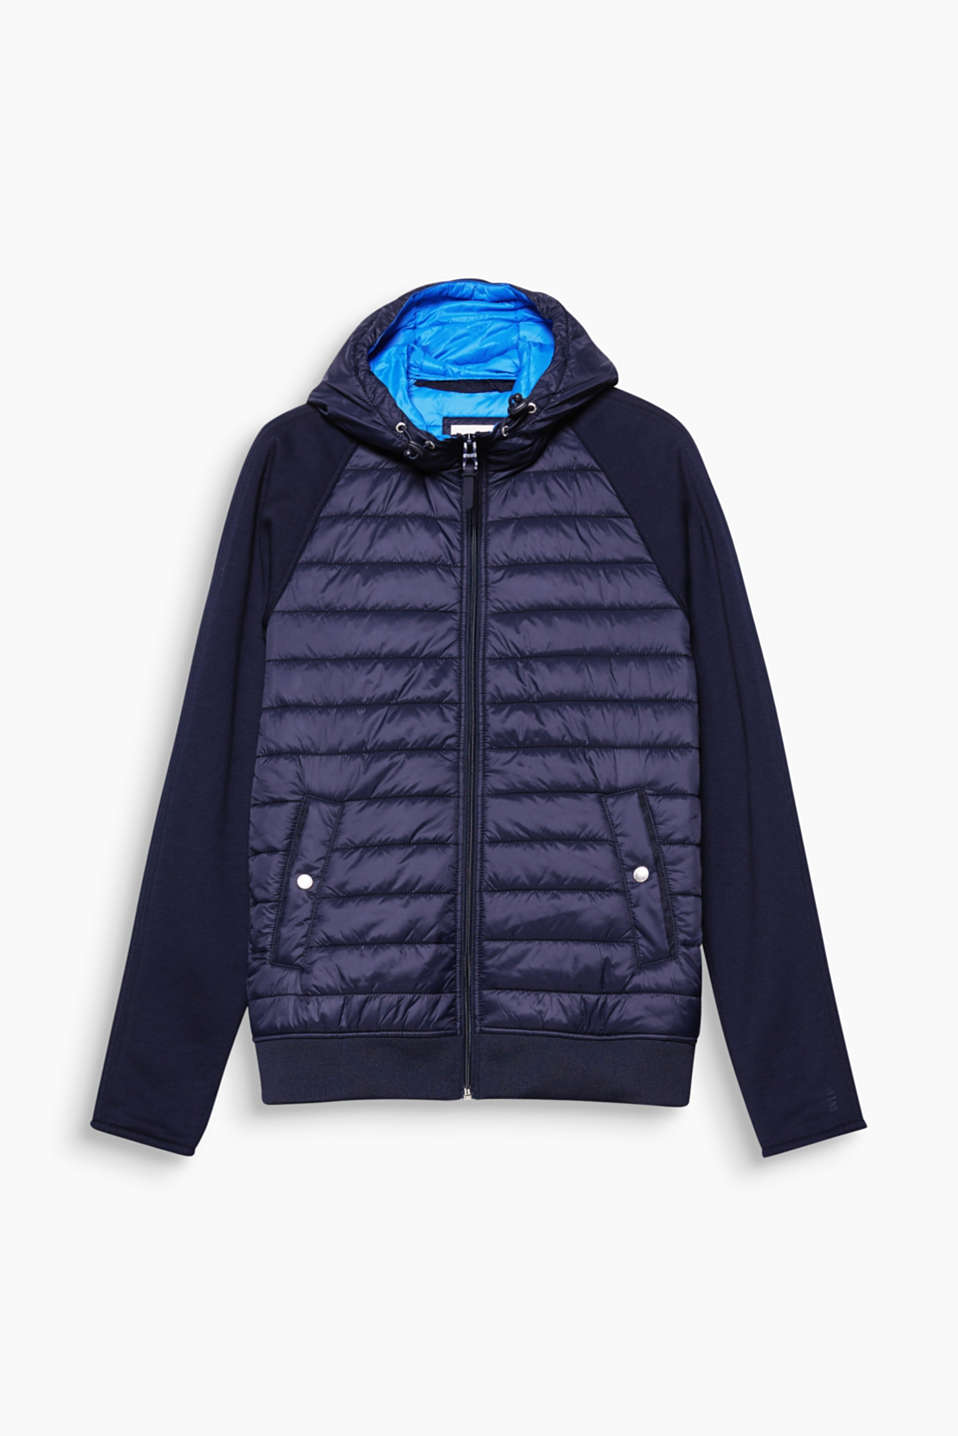 Trendy combination of materials! The attached neoprene sleeves make this quilted jacket an on-trend urban classic.